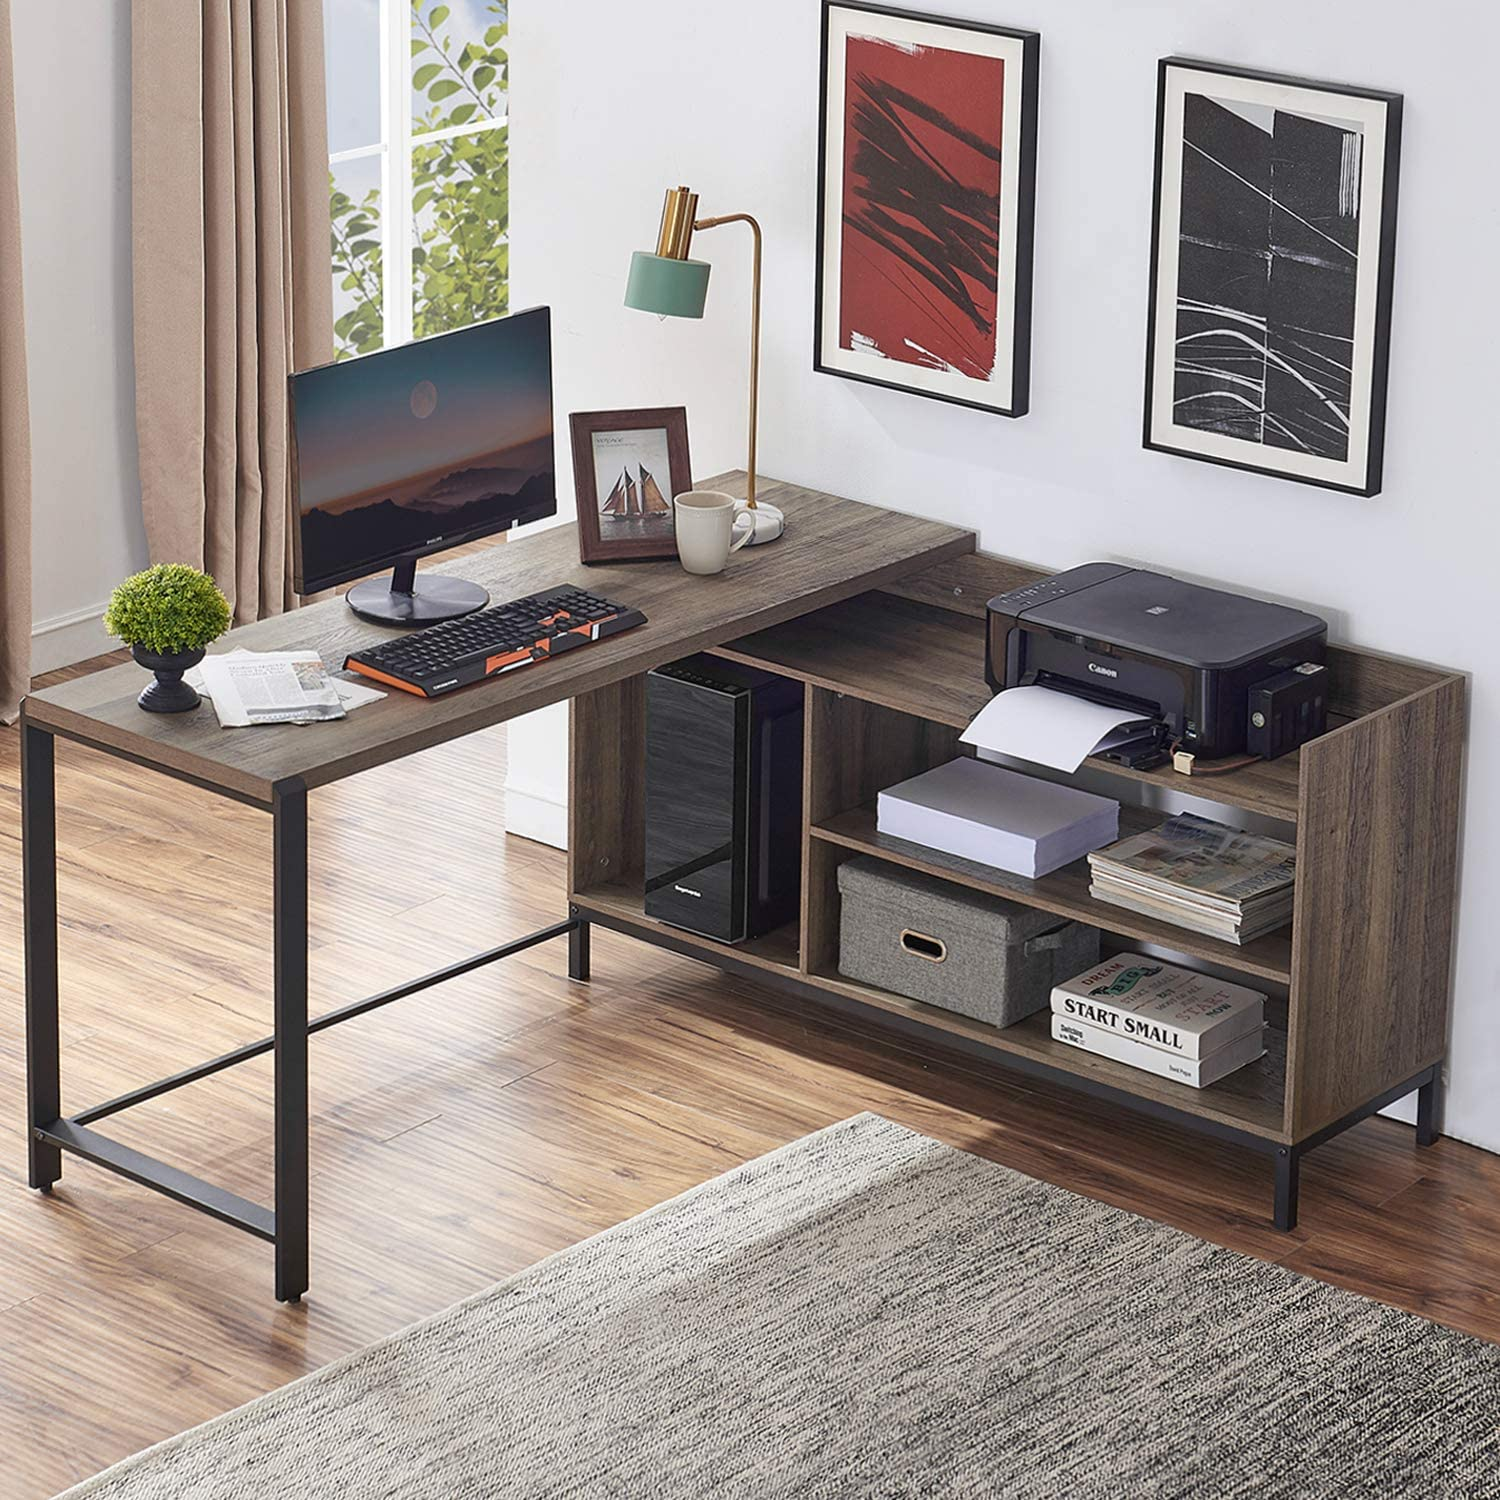 FELLYTN Rustic Industrial L Shaped Desk, 59 Inch Wood and Metal Study Corner Desk, Office Writing Workstation with Shelves and File Cabinet for Home Office (Gray Oak)